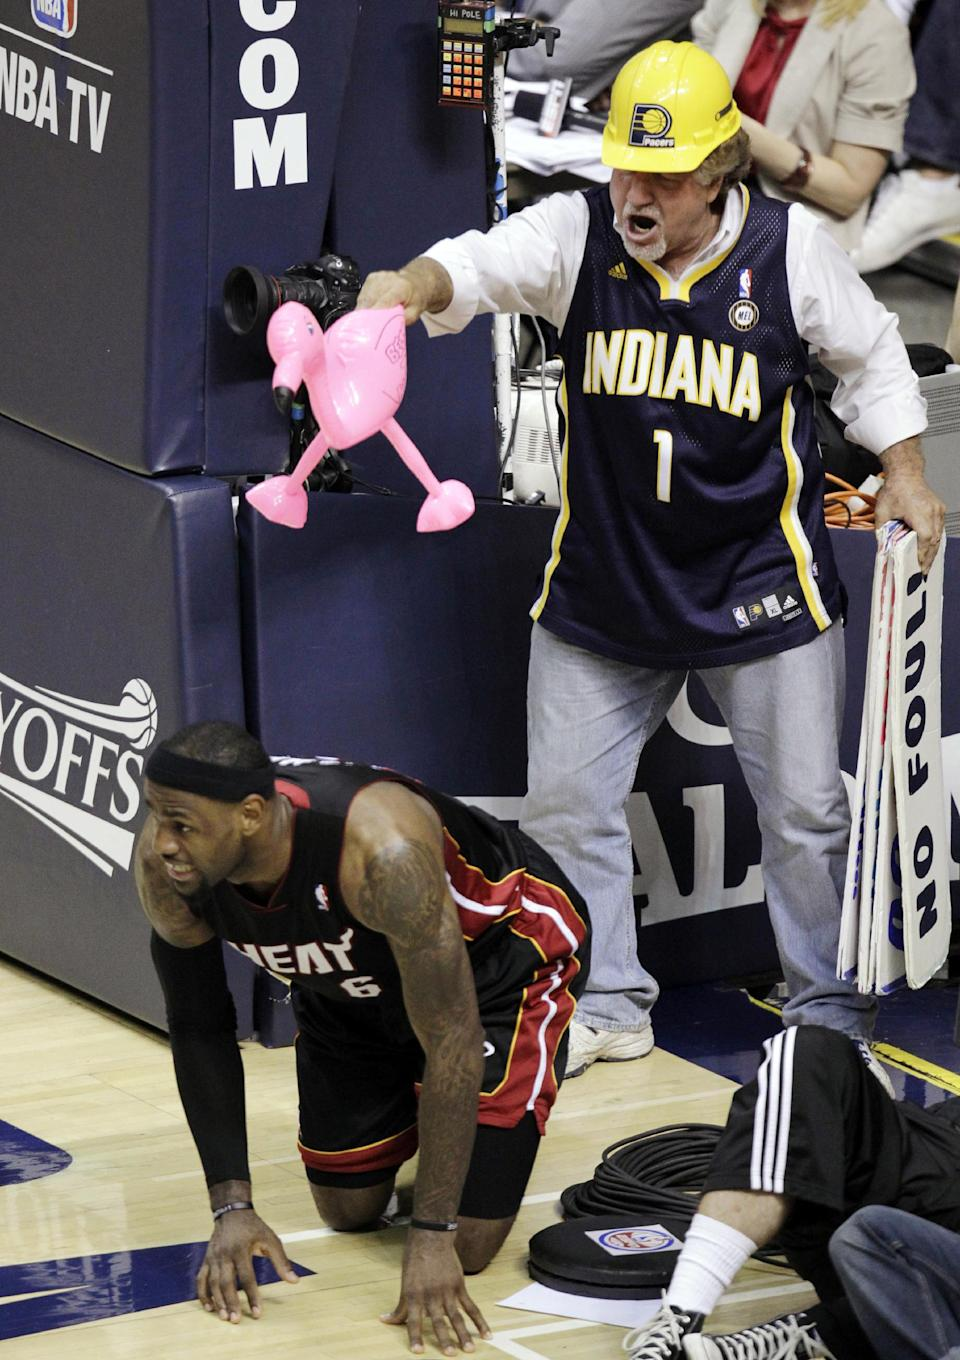 Indiana Pacers fan Matt Asen taunts Miami Heat forward LeBron James after he fell to the floor following a missed lay up on a fast break during the first half of Game 6 of their NBA basketball Eastern Conference semifinal playoff series in Indianapolis, Thursday, May 24, 2012. (AP Photo/Michael Conroy)